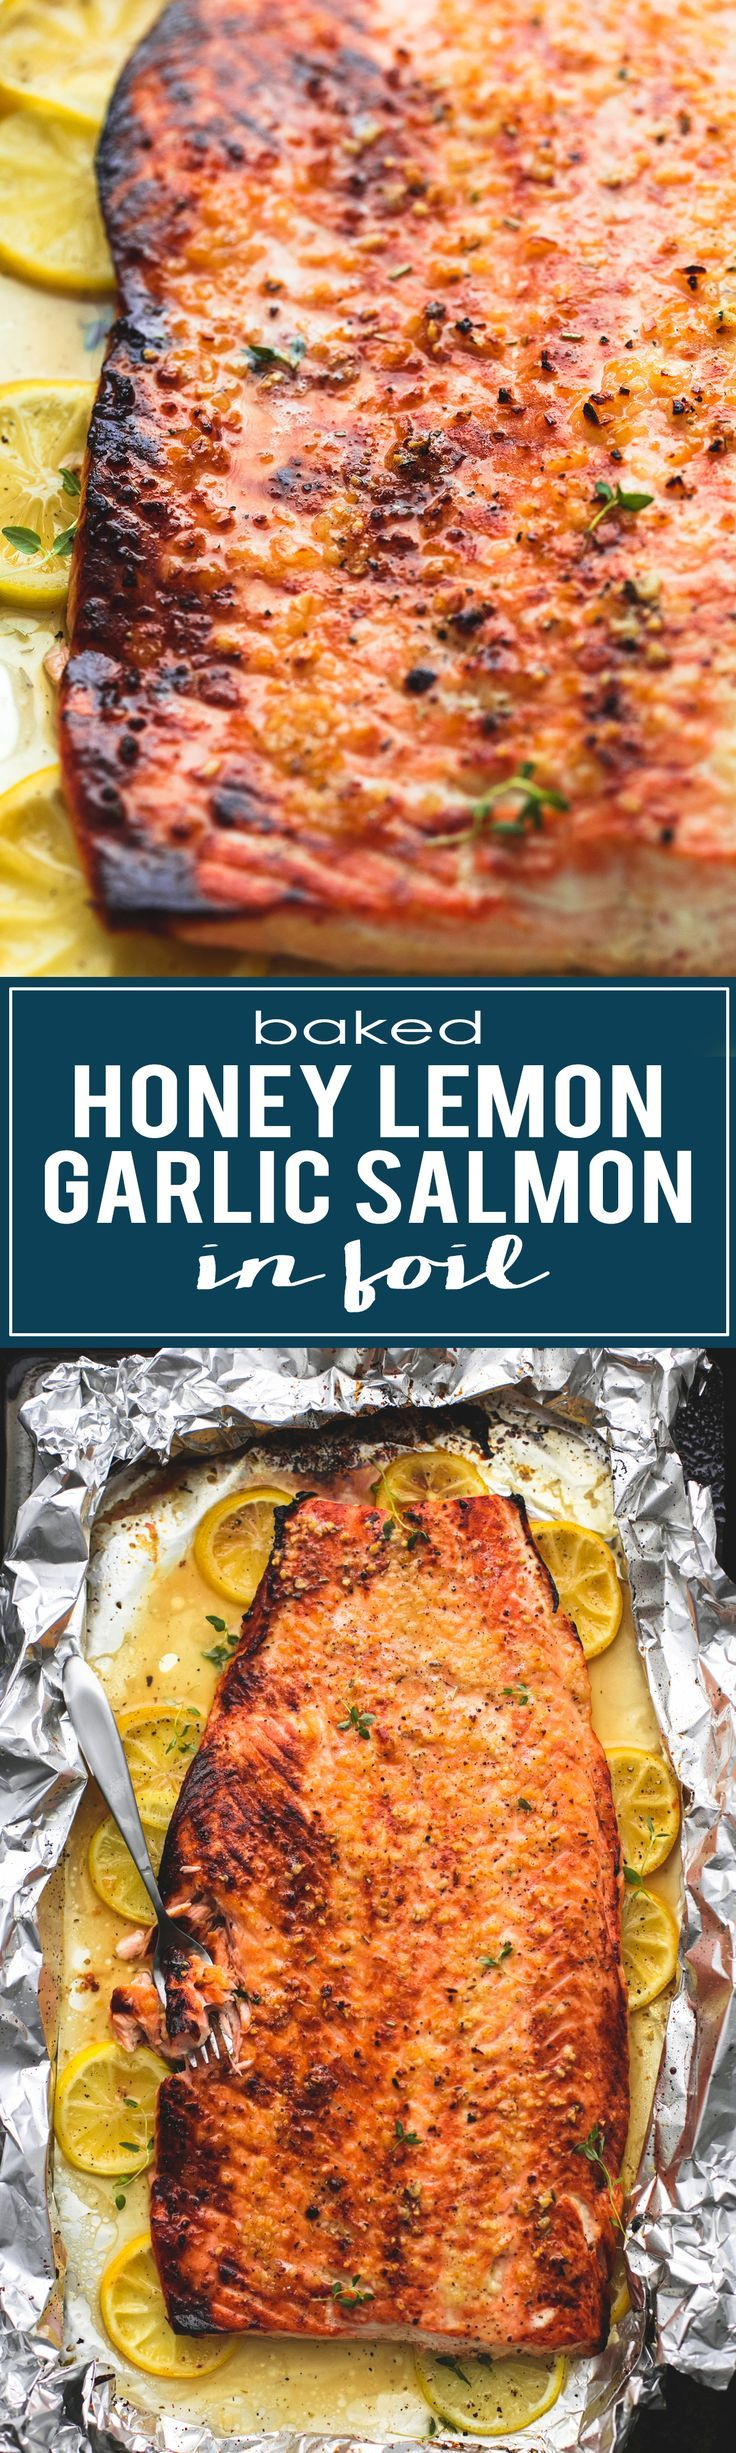 Easy and healthy Baked Honey Lemon Garlic Salmon in Foil | http://lecremedelacrumb.com